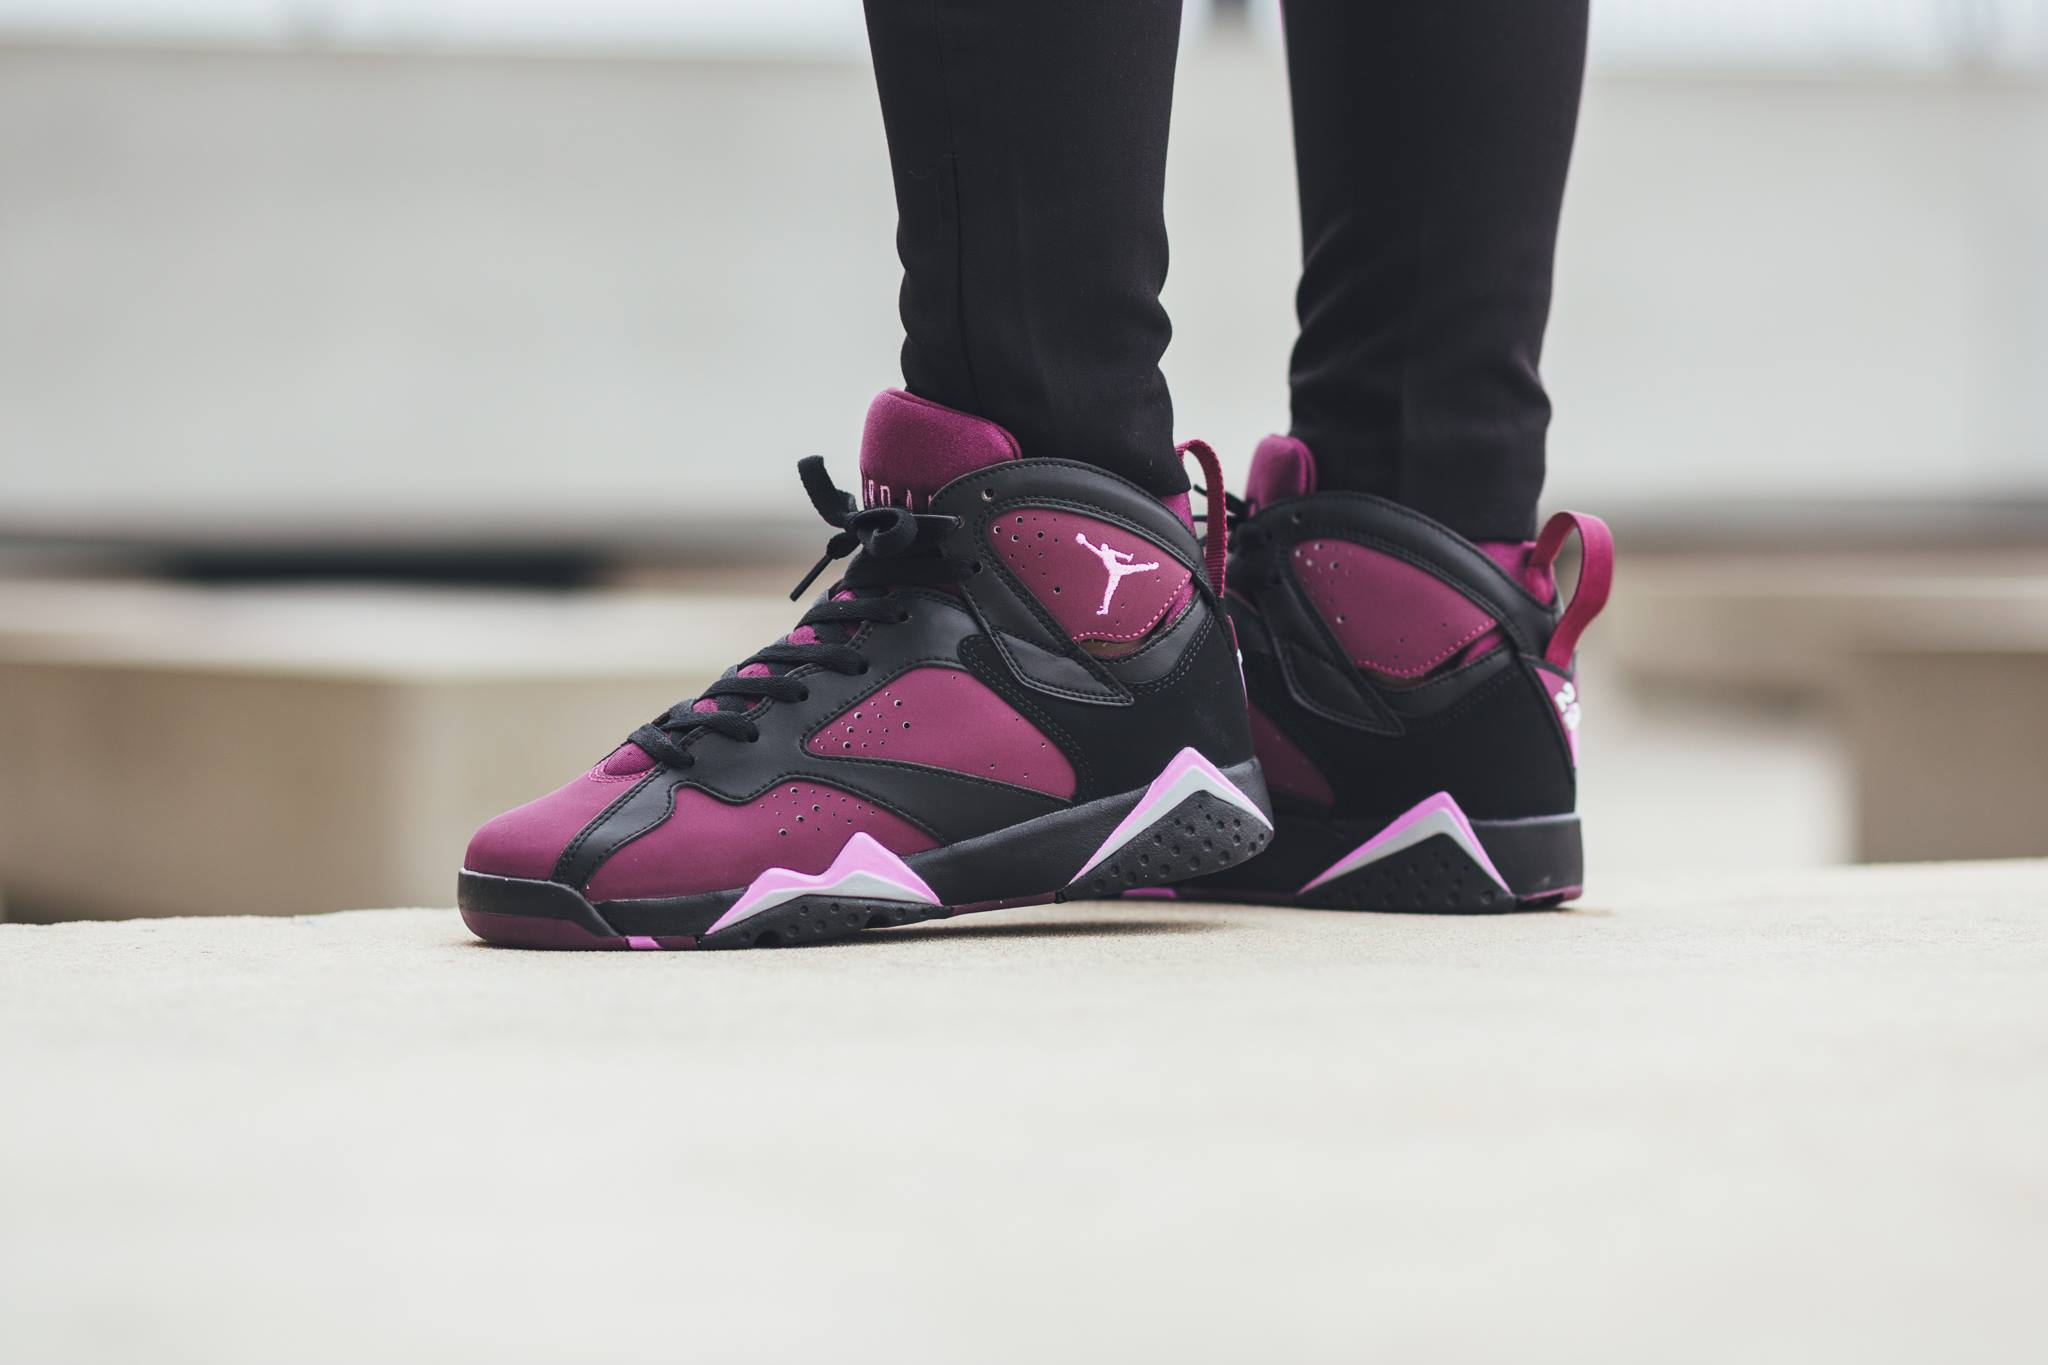 442960-009-air-jordan-7-retro-mulberry-03